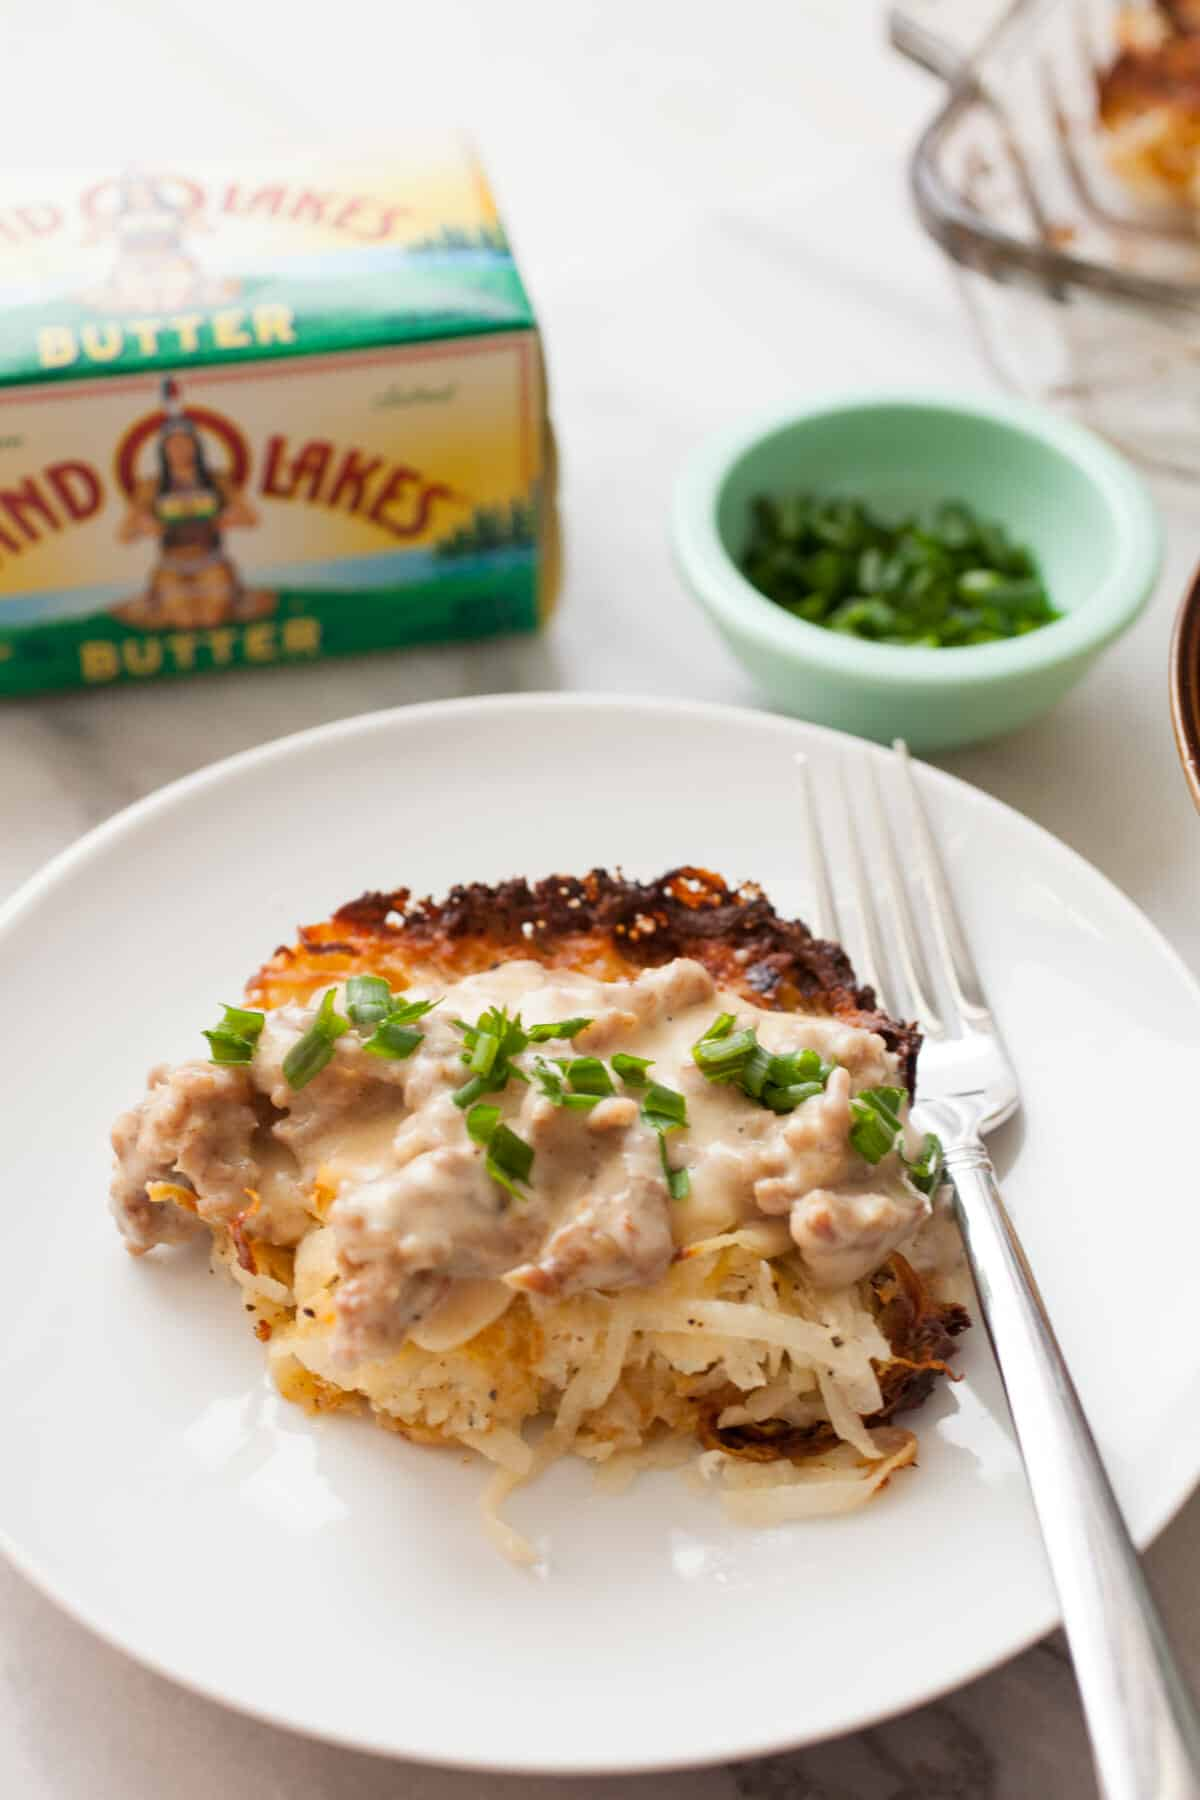 Potato Casserole with Sausage Gravy: This is slow comfort food at its best. Homemade simple potato casserole with fresh potatoes topped with a hearty sausage gravy. Comfort food on a plate!   macheesmo.com